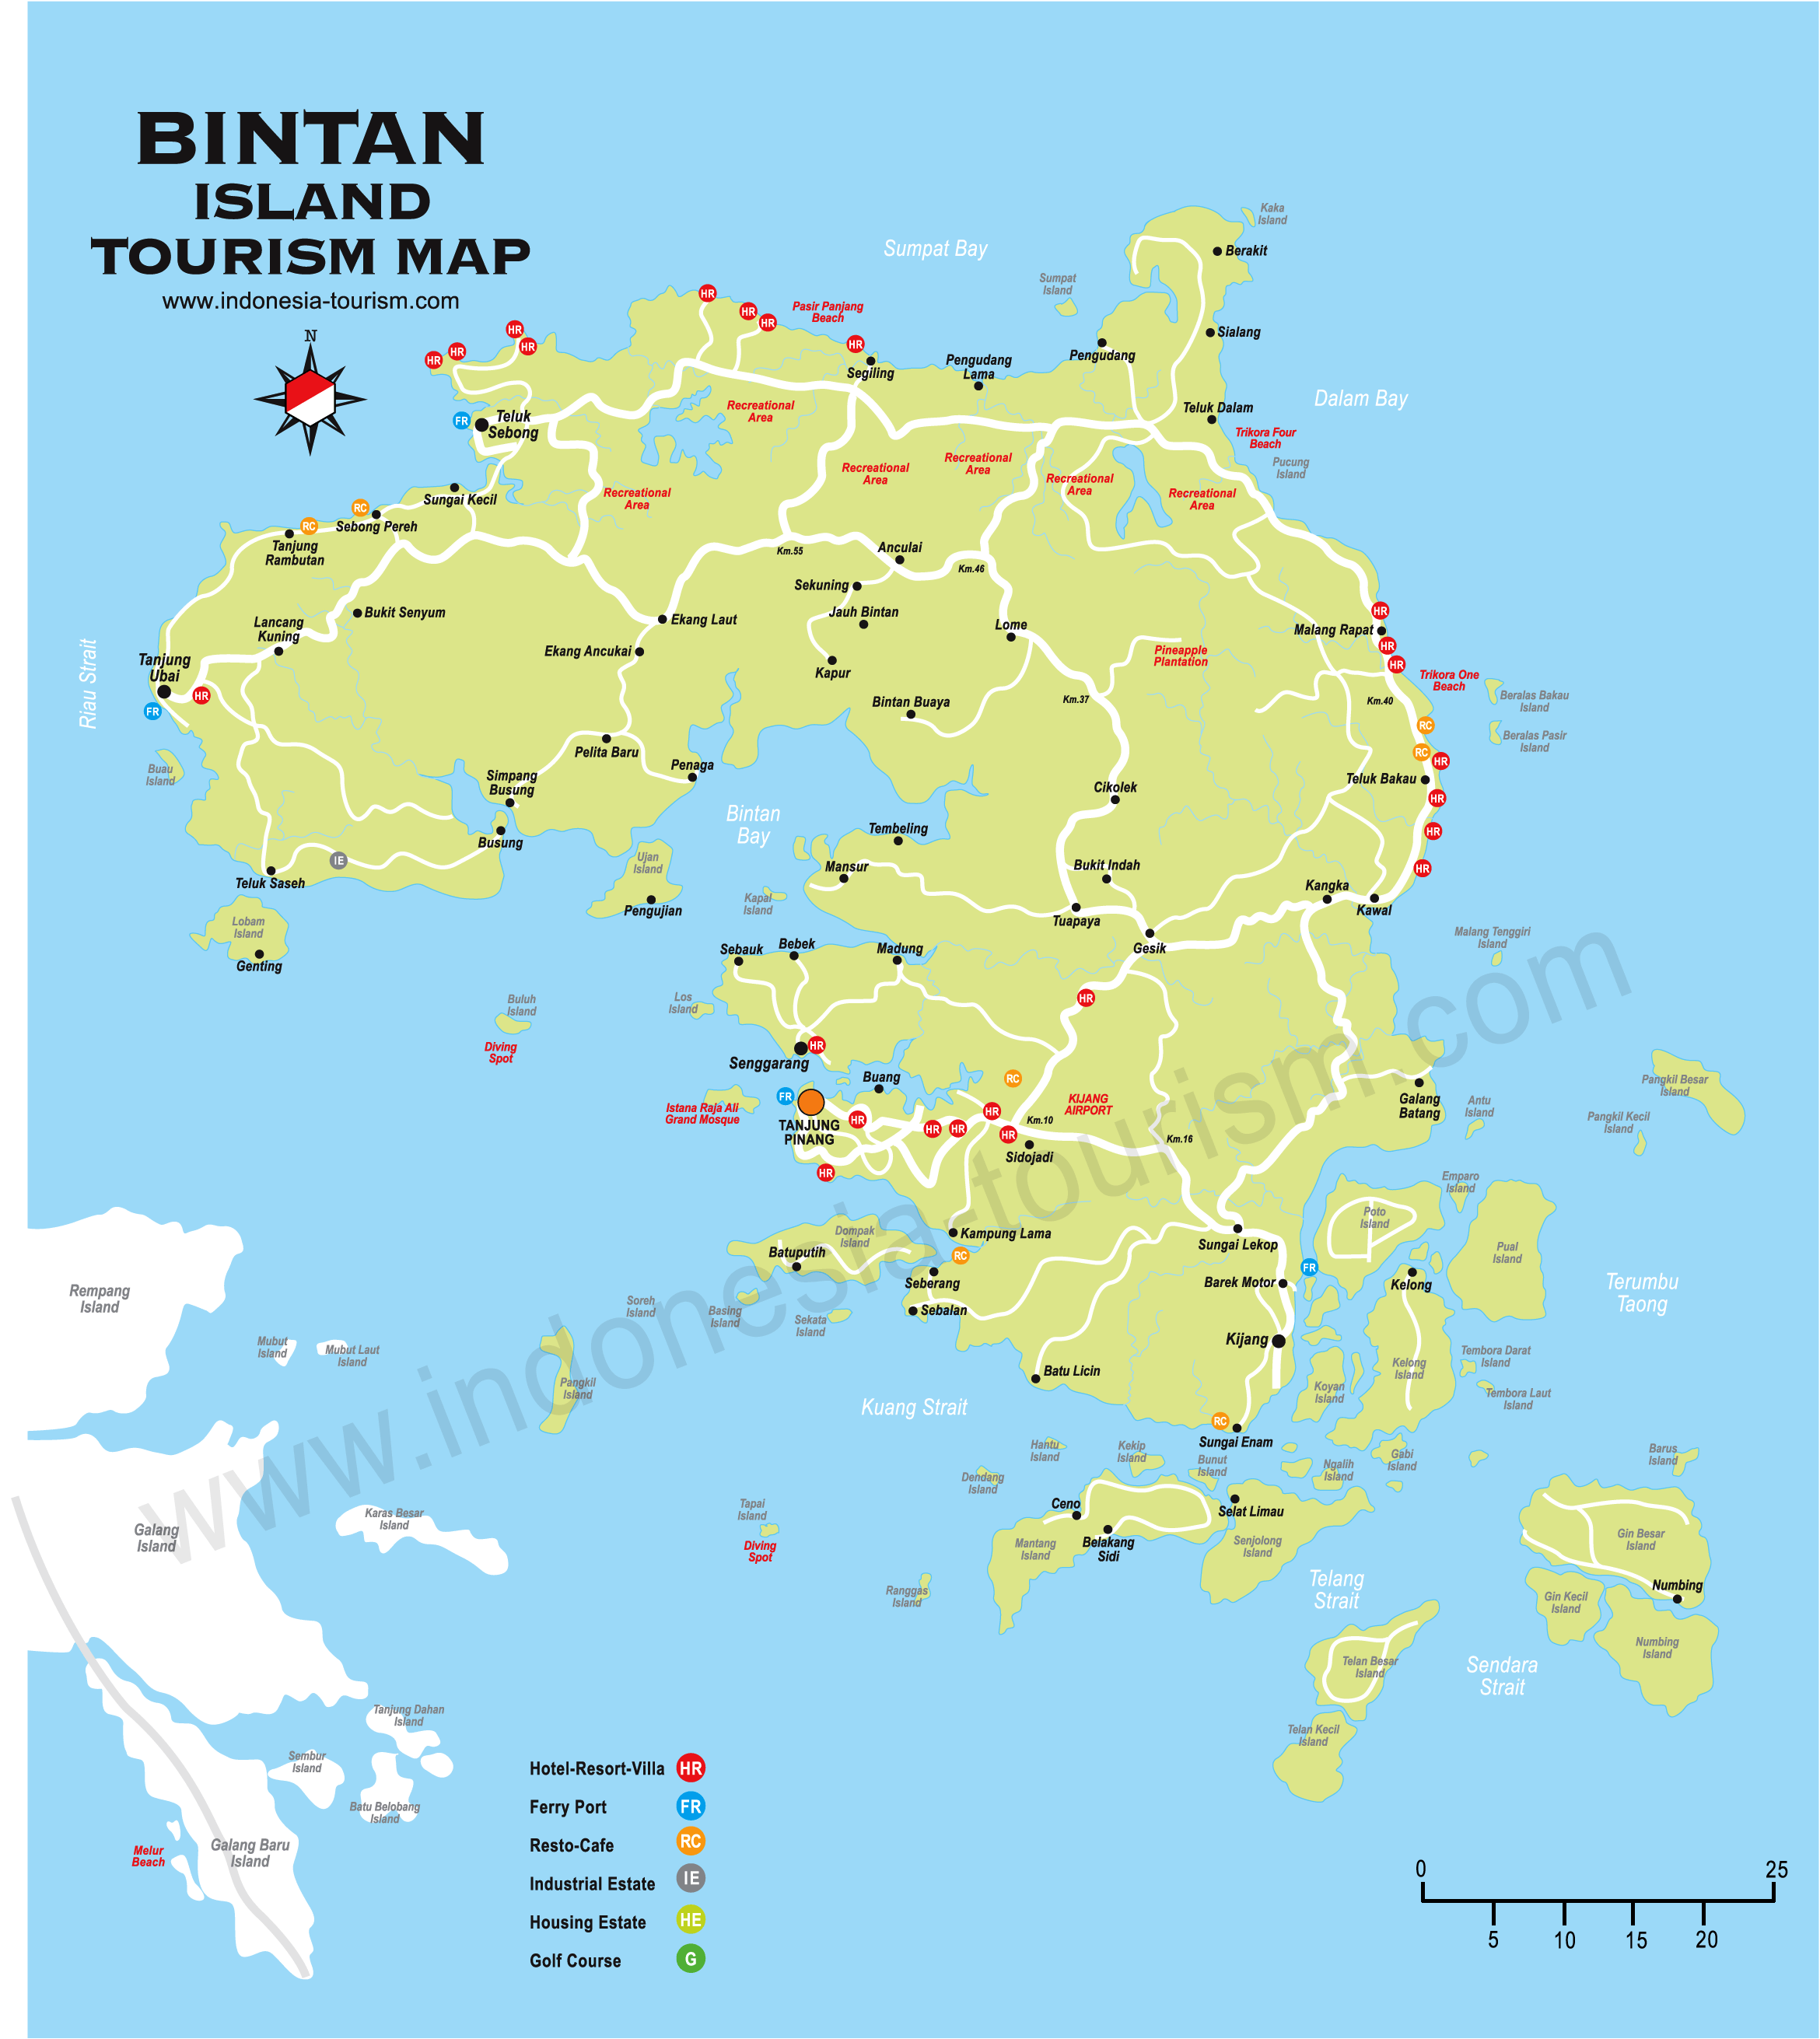 Riau Archipelago Bintan Island Map Desktop For Computers ... on map of costa rica, map of hawaii, map of spain, map of malaysia, map of south pacific, map of bali, map of austrailia, map of fiji, map of brazil, map of bahamas, map of bora bora, map of kwajalein, map of moorea, map of carribean, map of switzerland, map of new zealand, map of thailand, map of french polynesia, map of pacific ocean, map of seychelles,